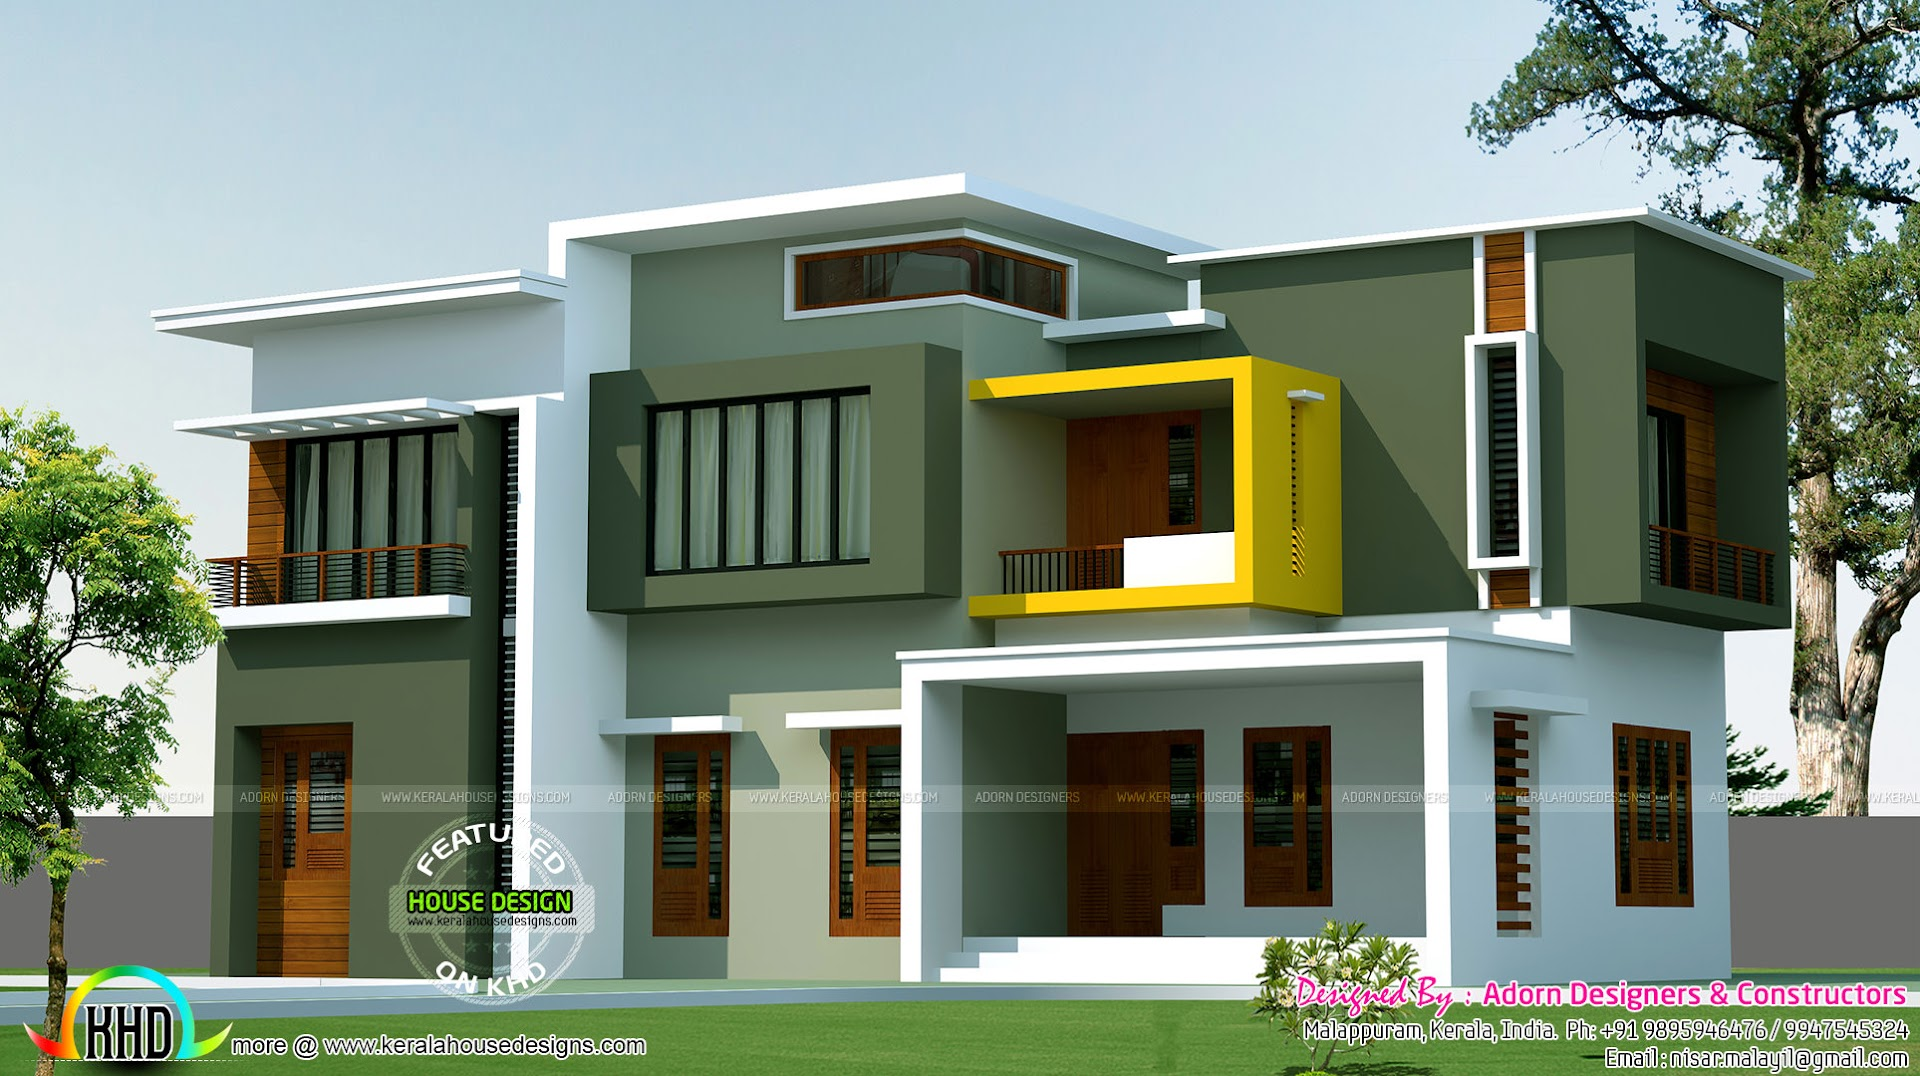 Box model contemporary house 2500 sq ft kerala home 2500 sq ft